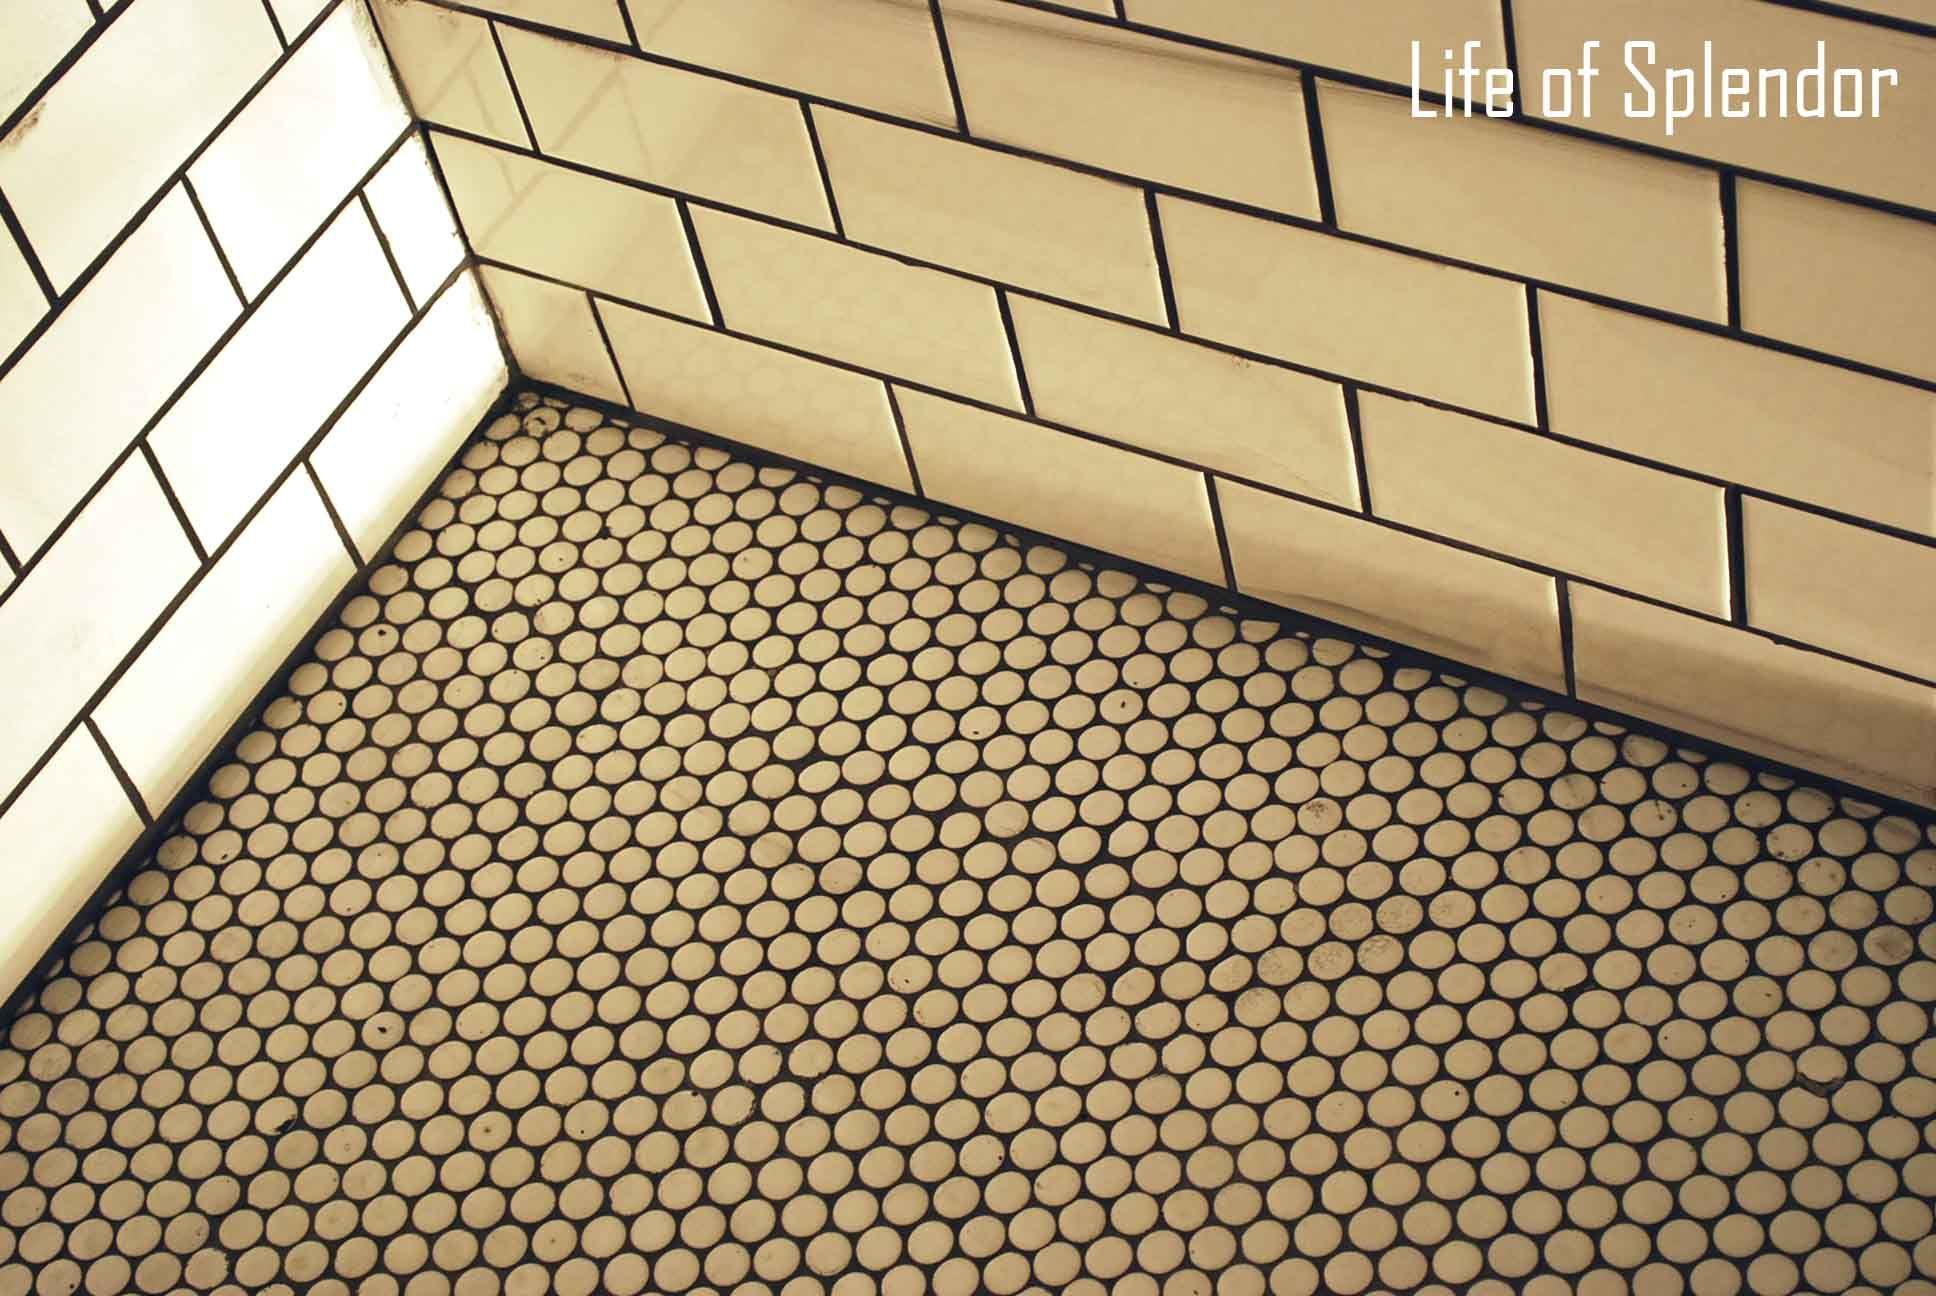 Subway Tile Walls Penny Tile Floor for an old house B A T H